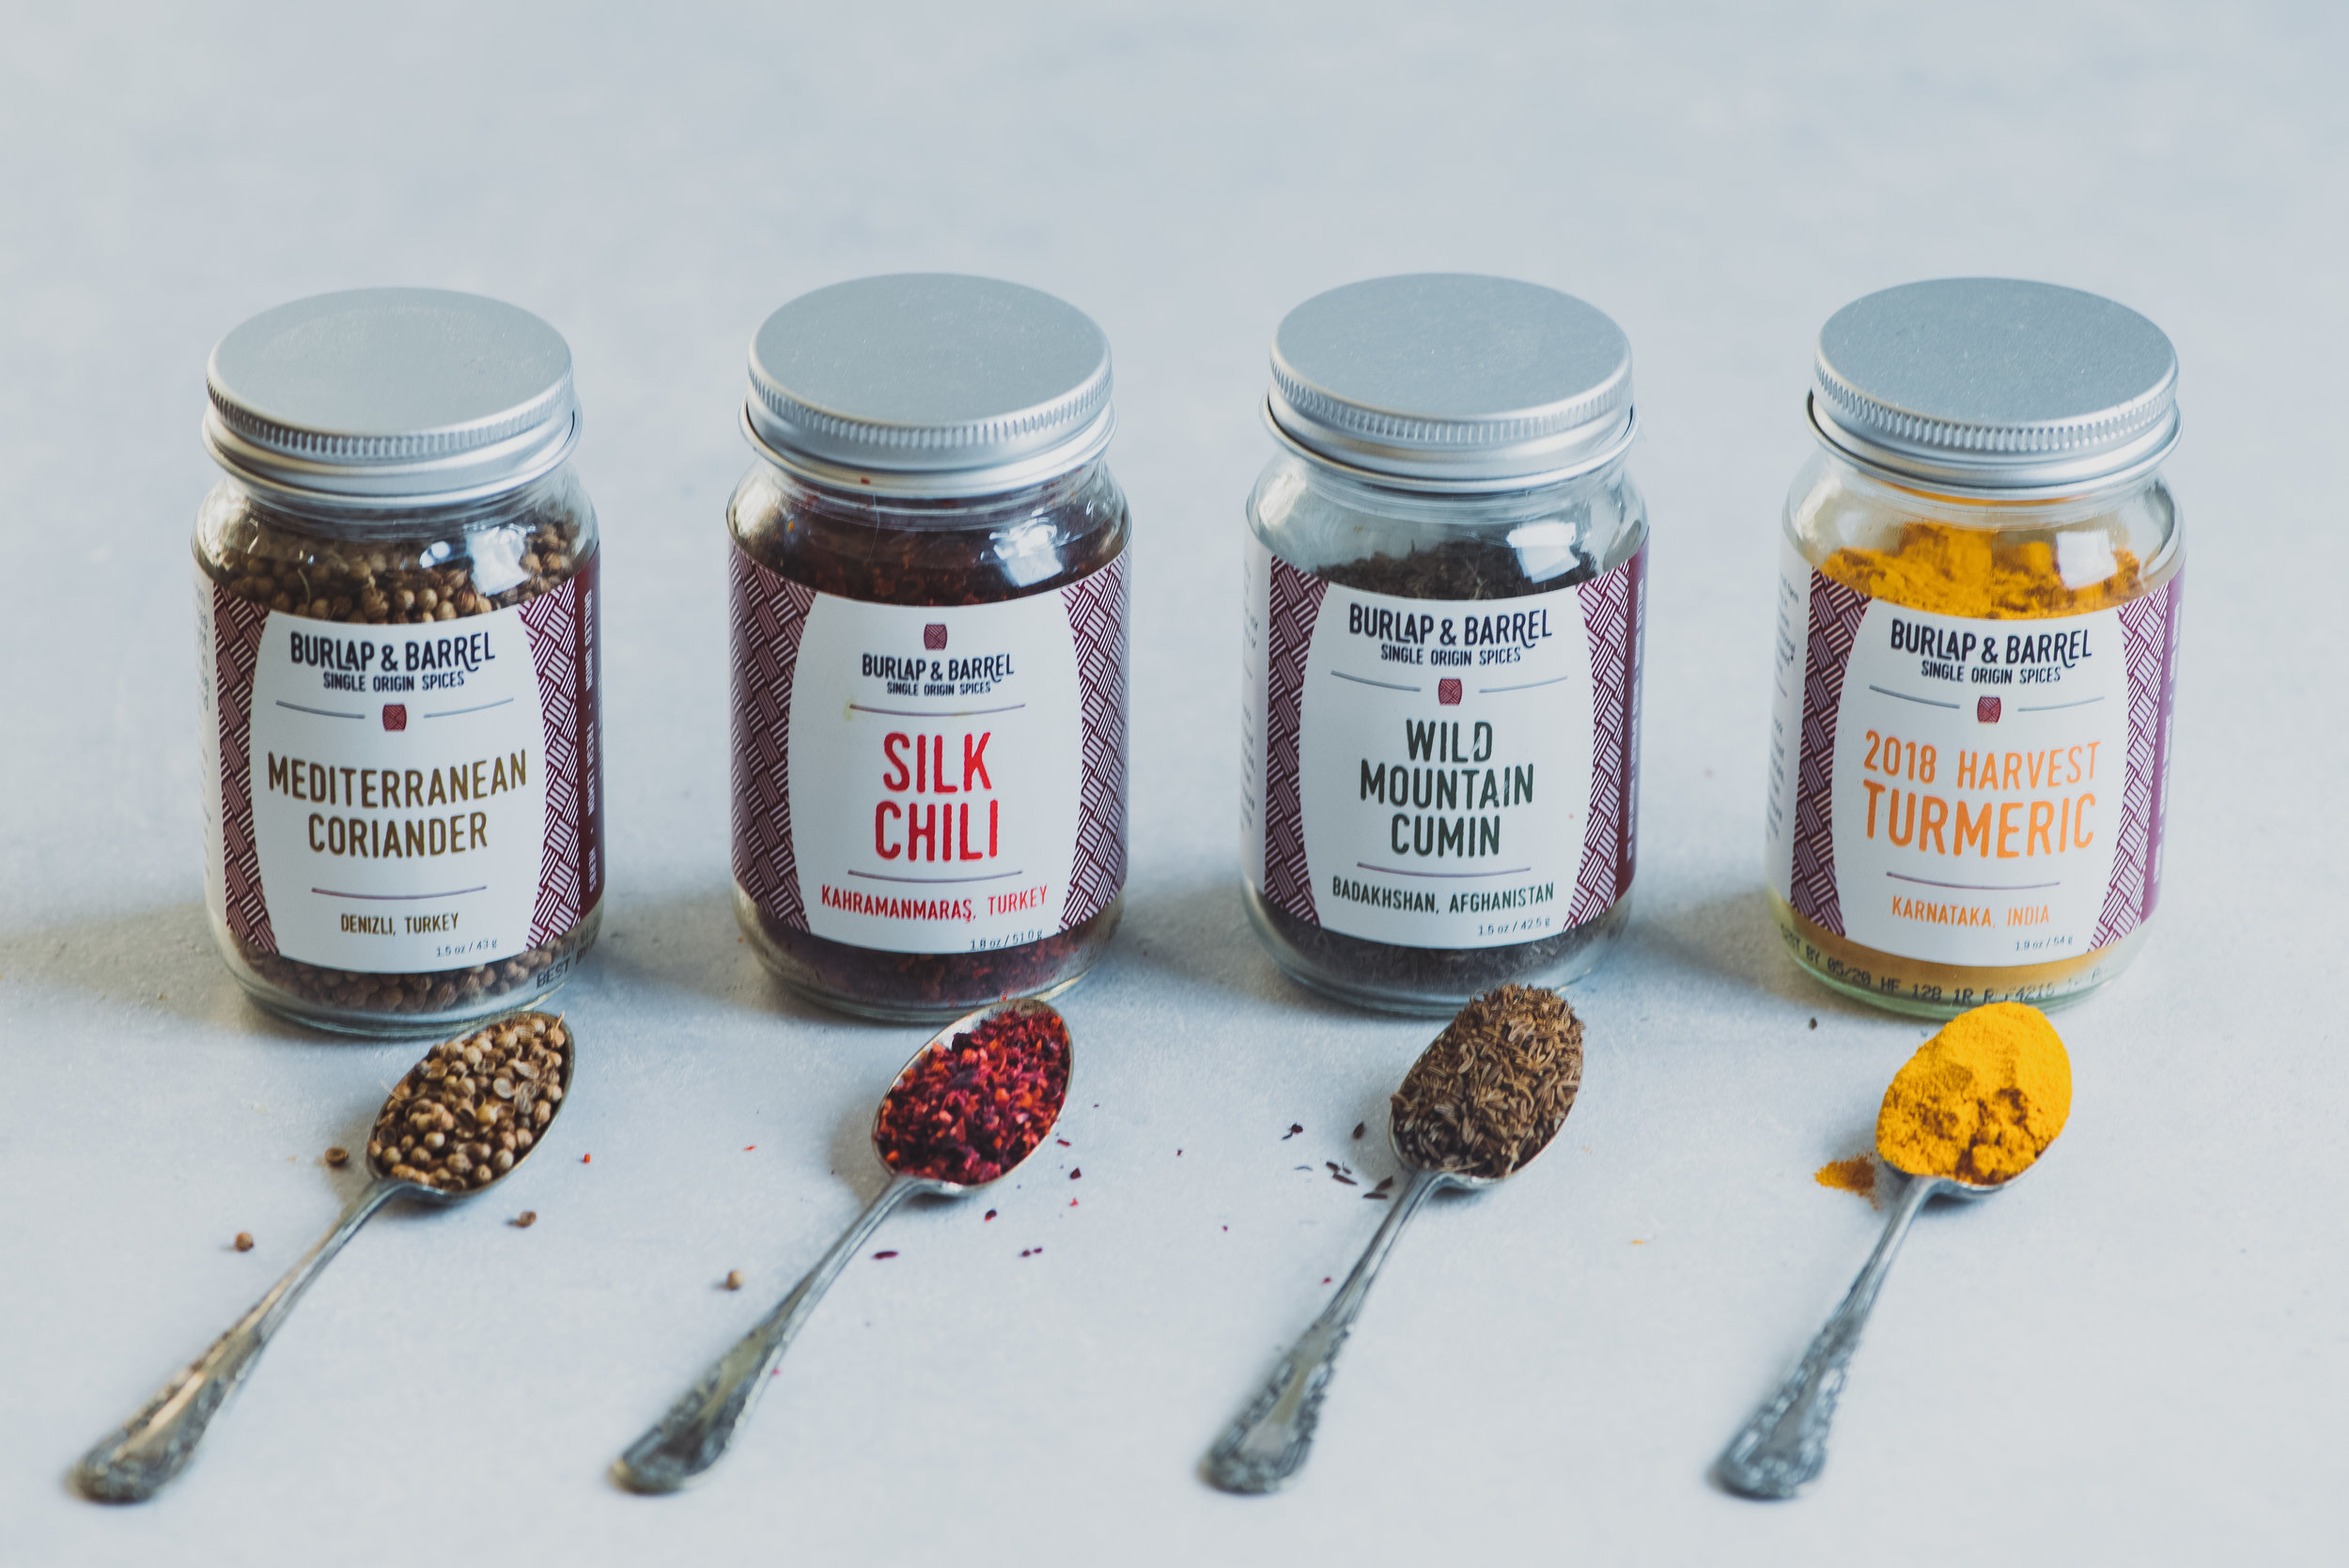 Burlap & Barrel Spice Set - Spices sourced directly from small farms and co-ops that promotes worker financial security and sustainability. Plus, these flavors are so much more potent than typical grocery store spices.Price: $21.99-$46.99 from burlapandbarrel.com